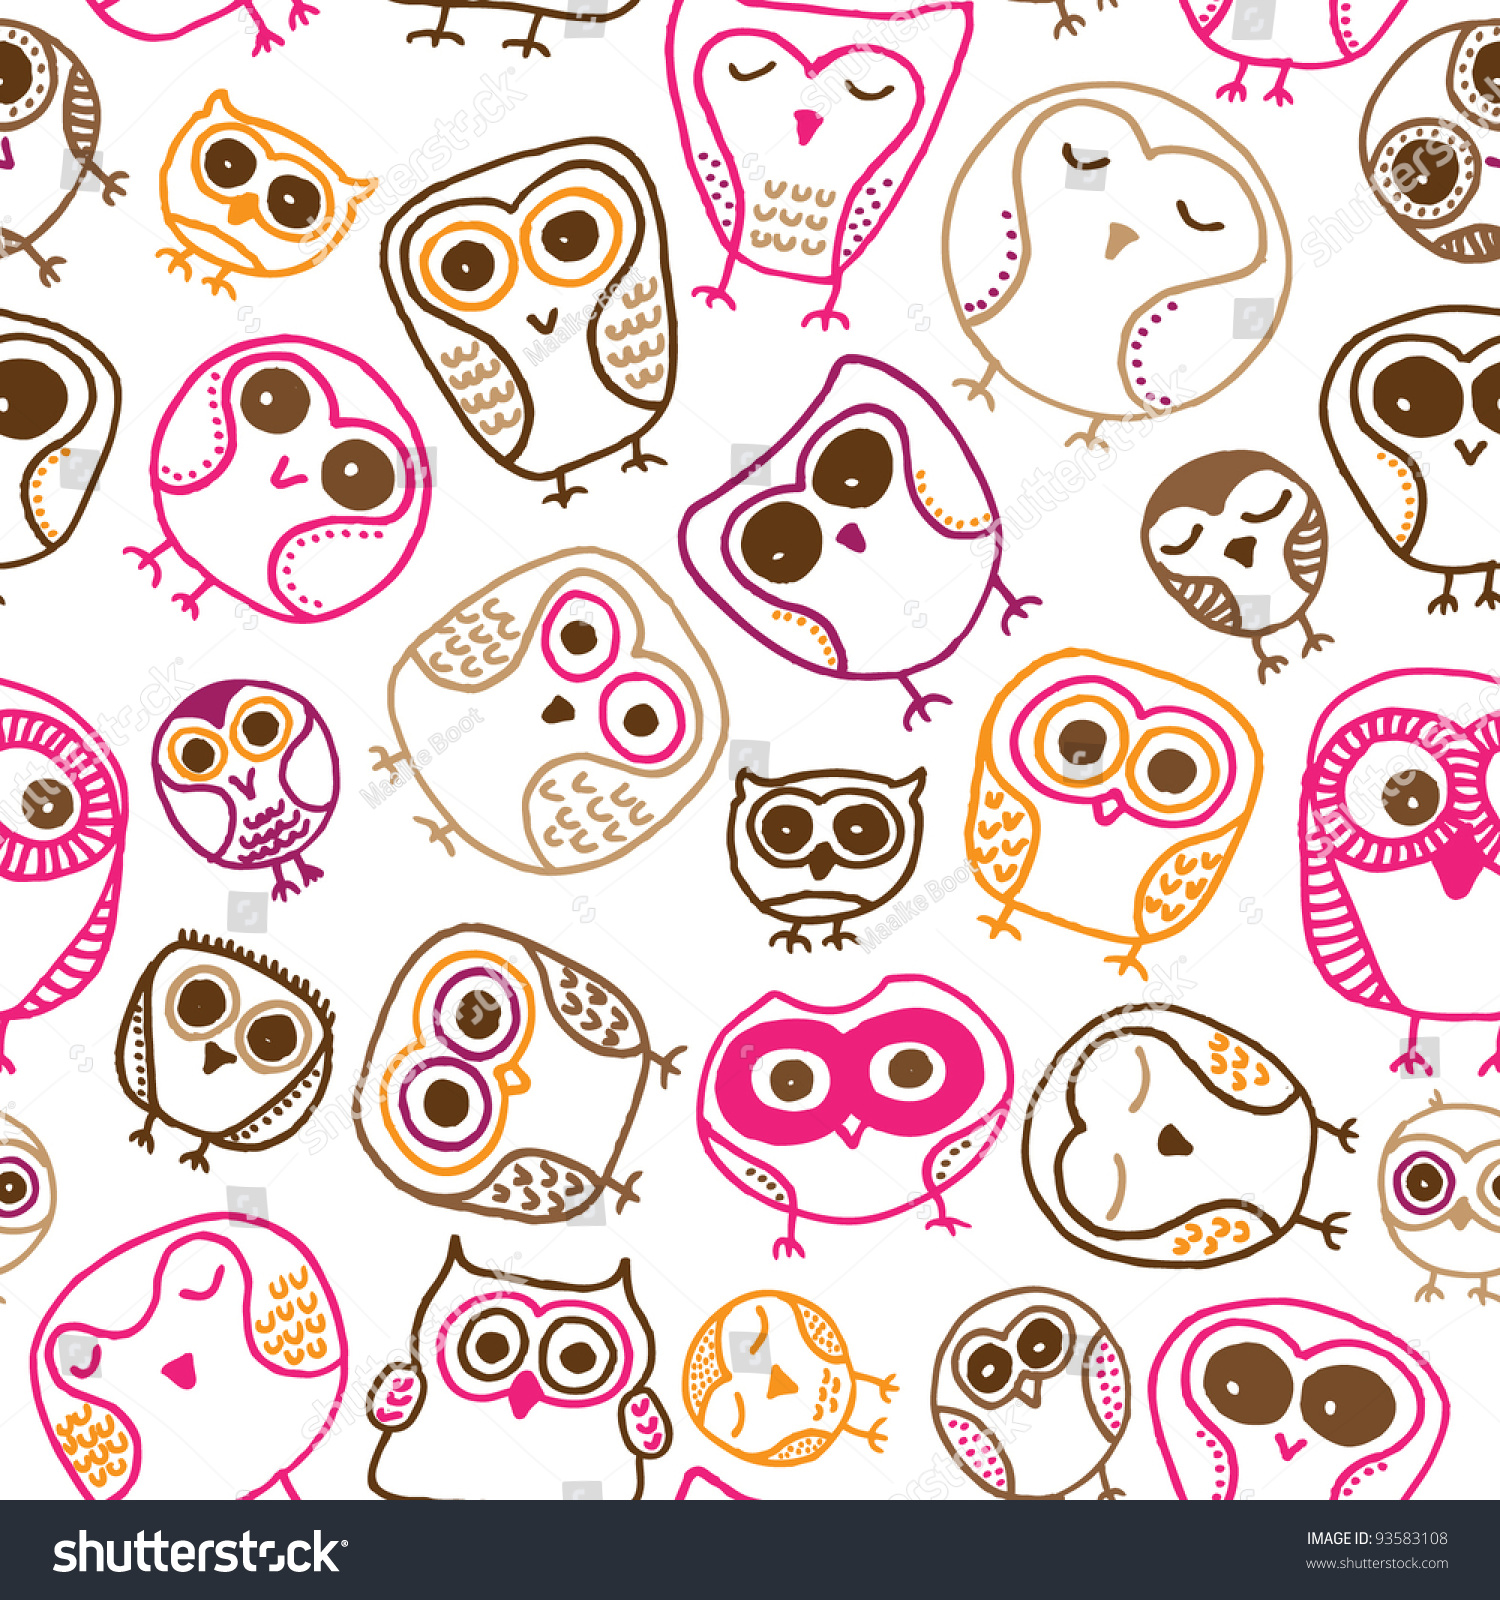 Seamless Fun Colorful Owl Doodle Background Pattern For ...